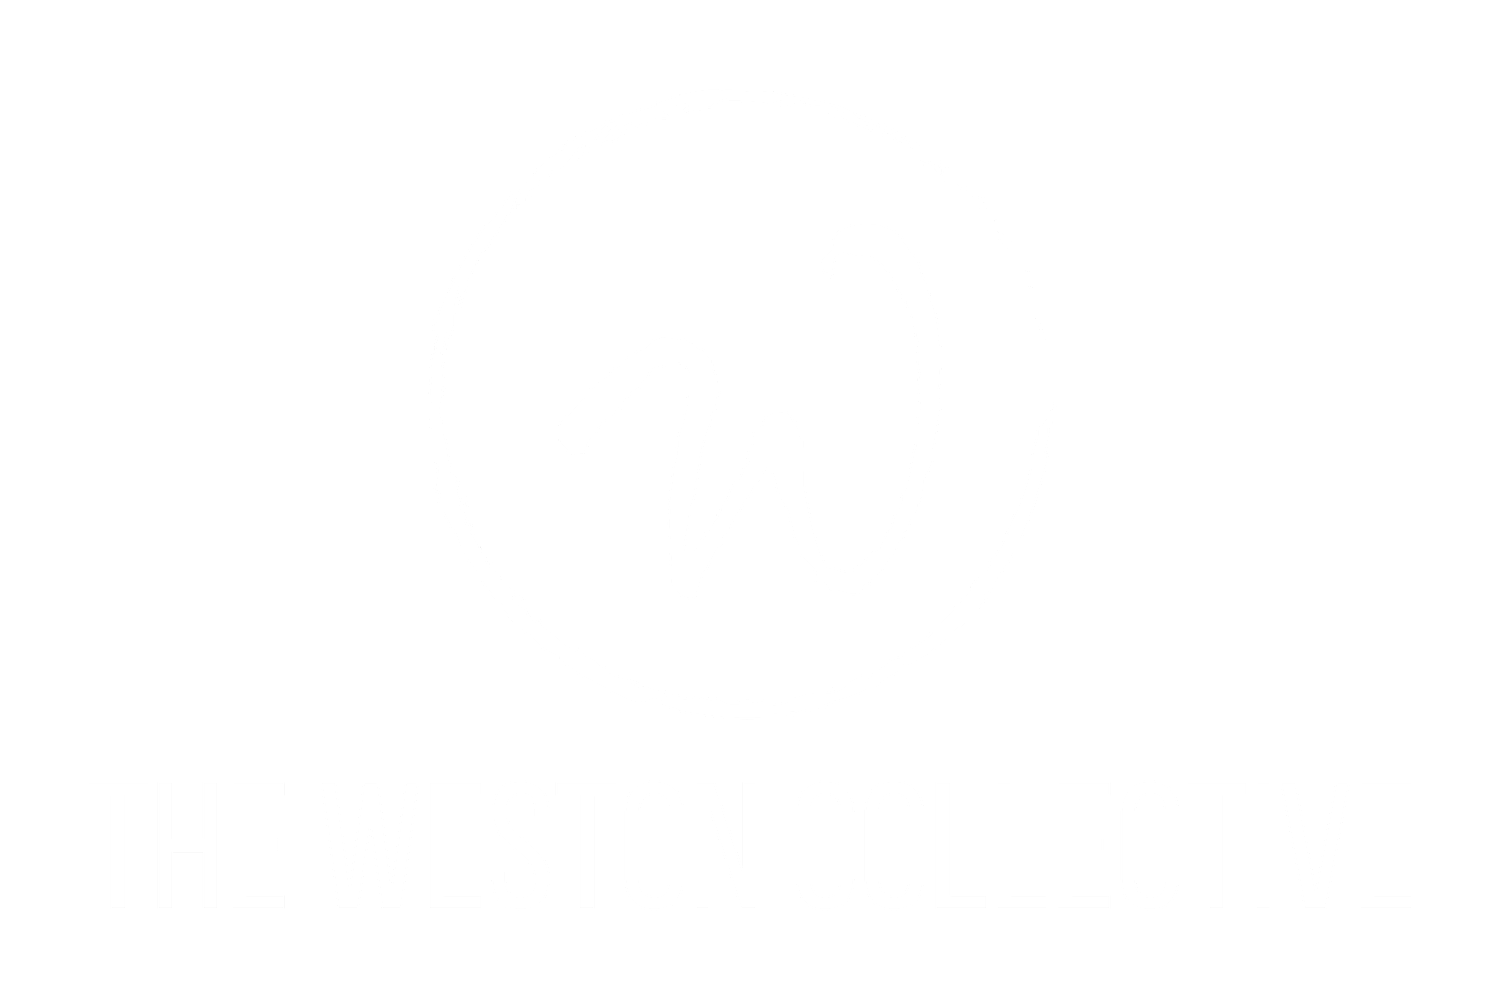 The Weston Collective